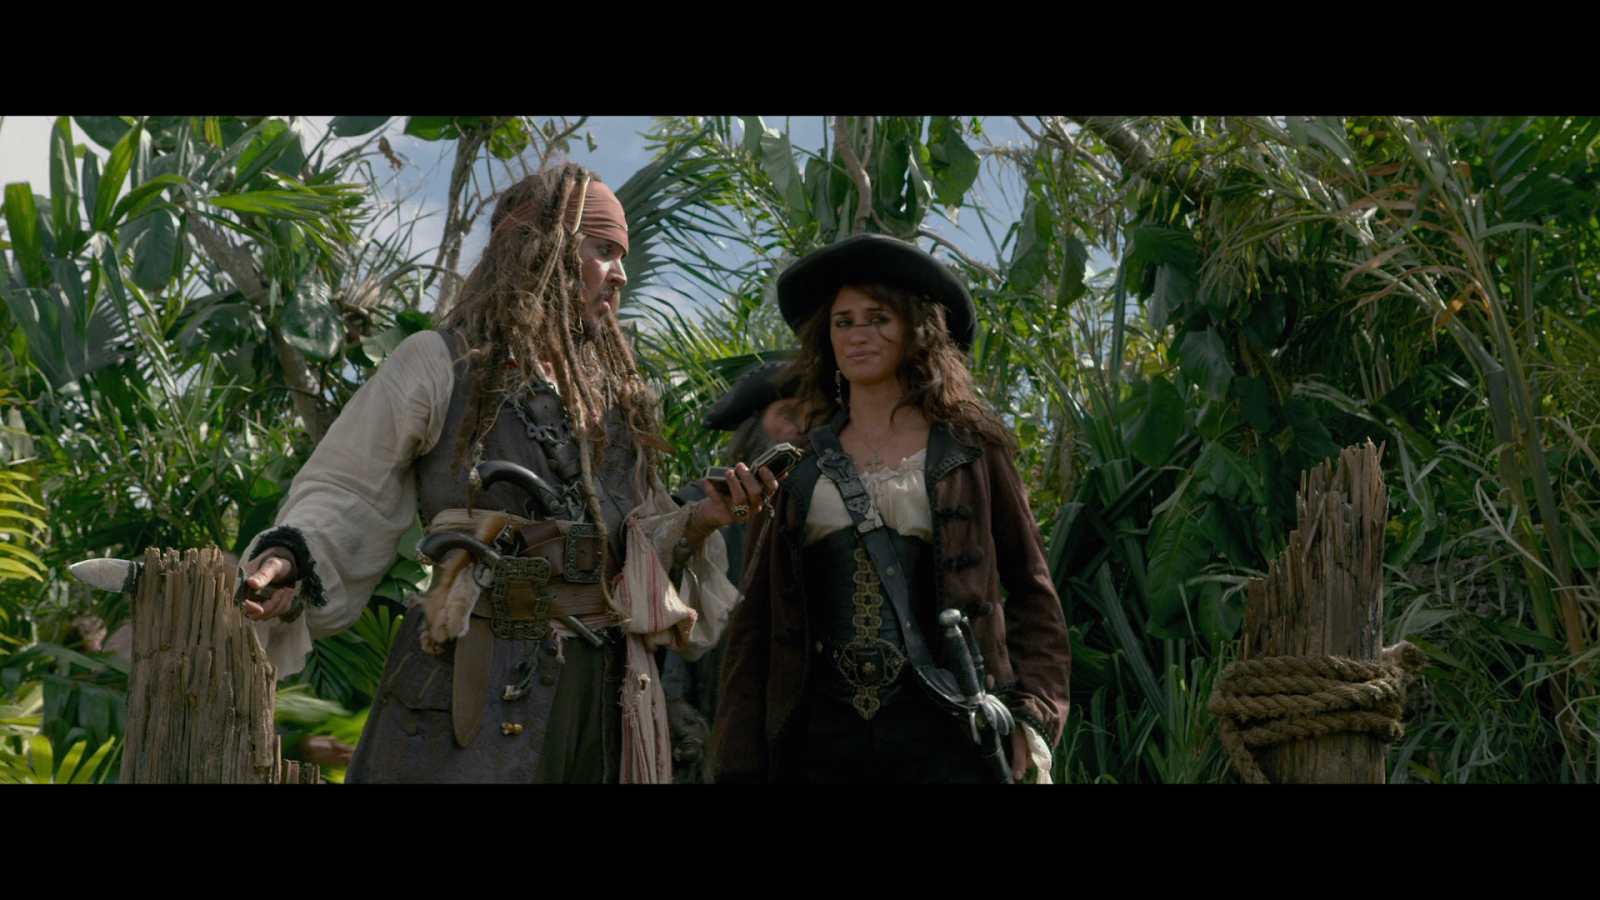 Piratas del Caribe 4: Navegando en Aguas Misteriosas (2011) BRRip Full HD 1080p Latino - Ingles captura 3